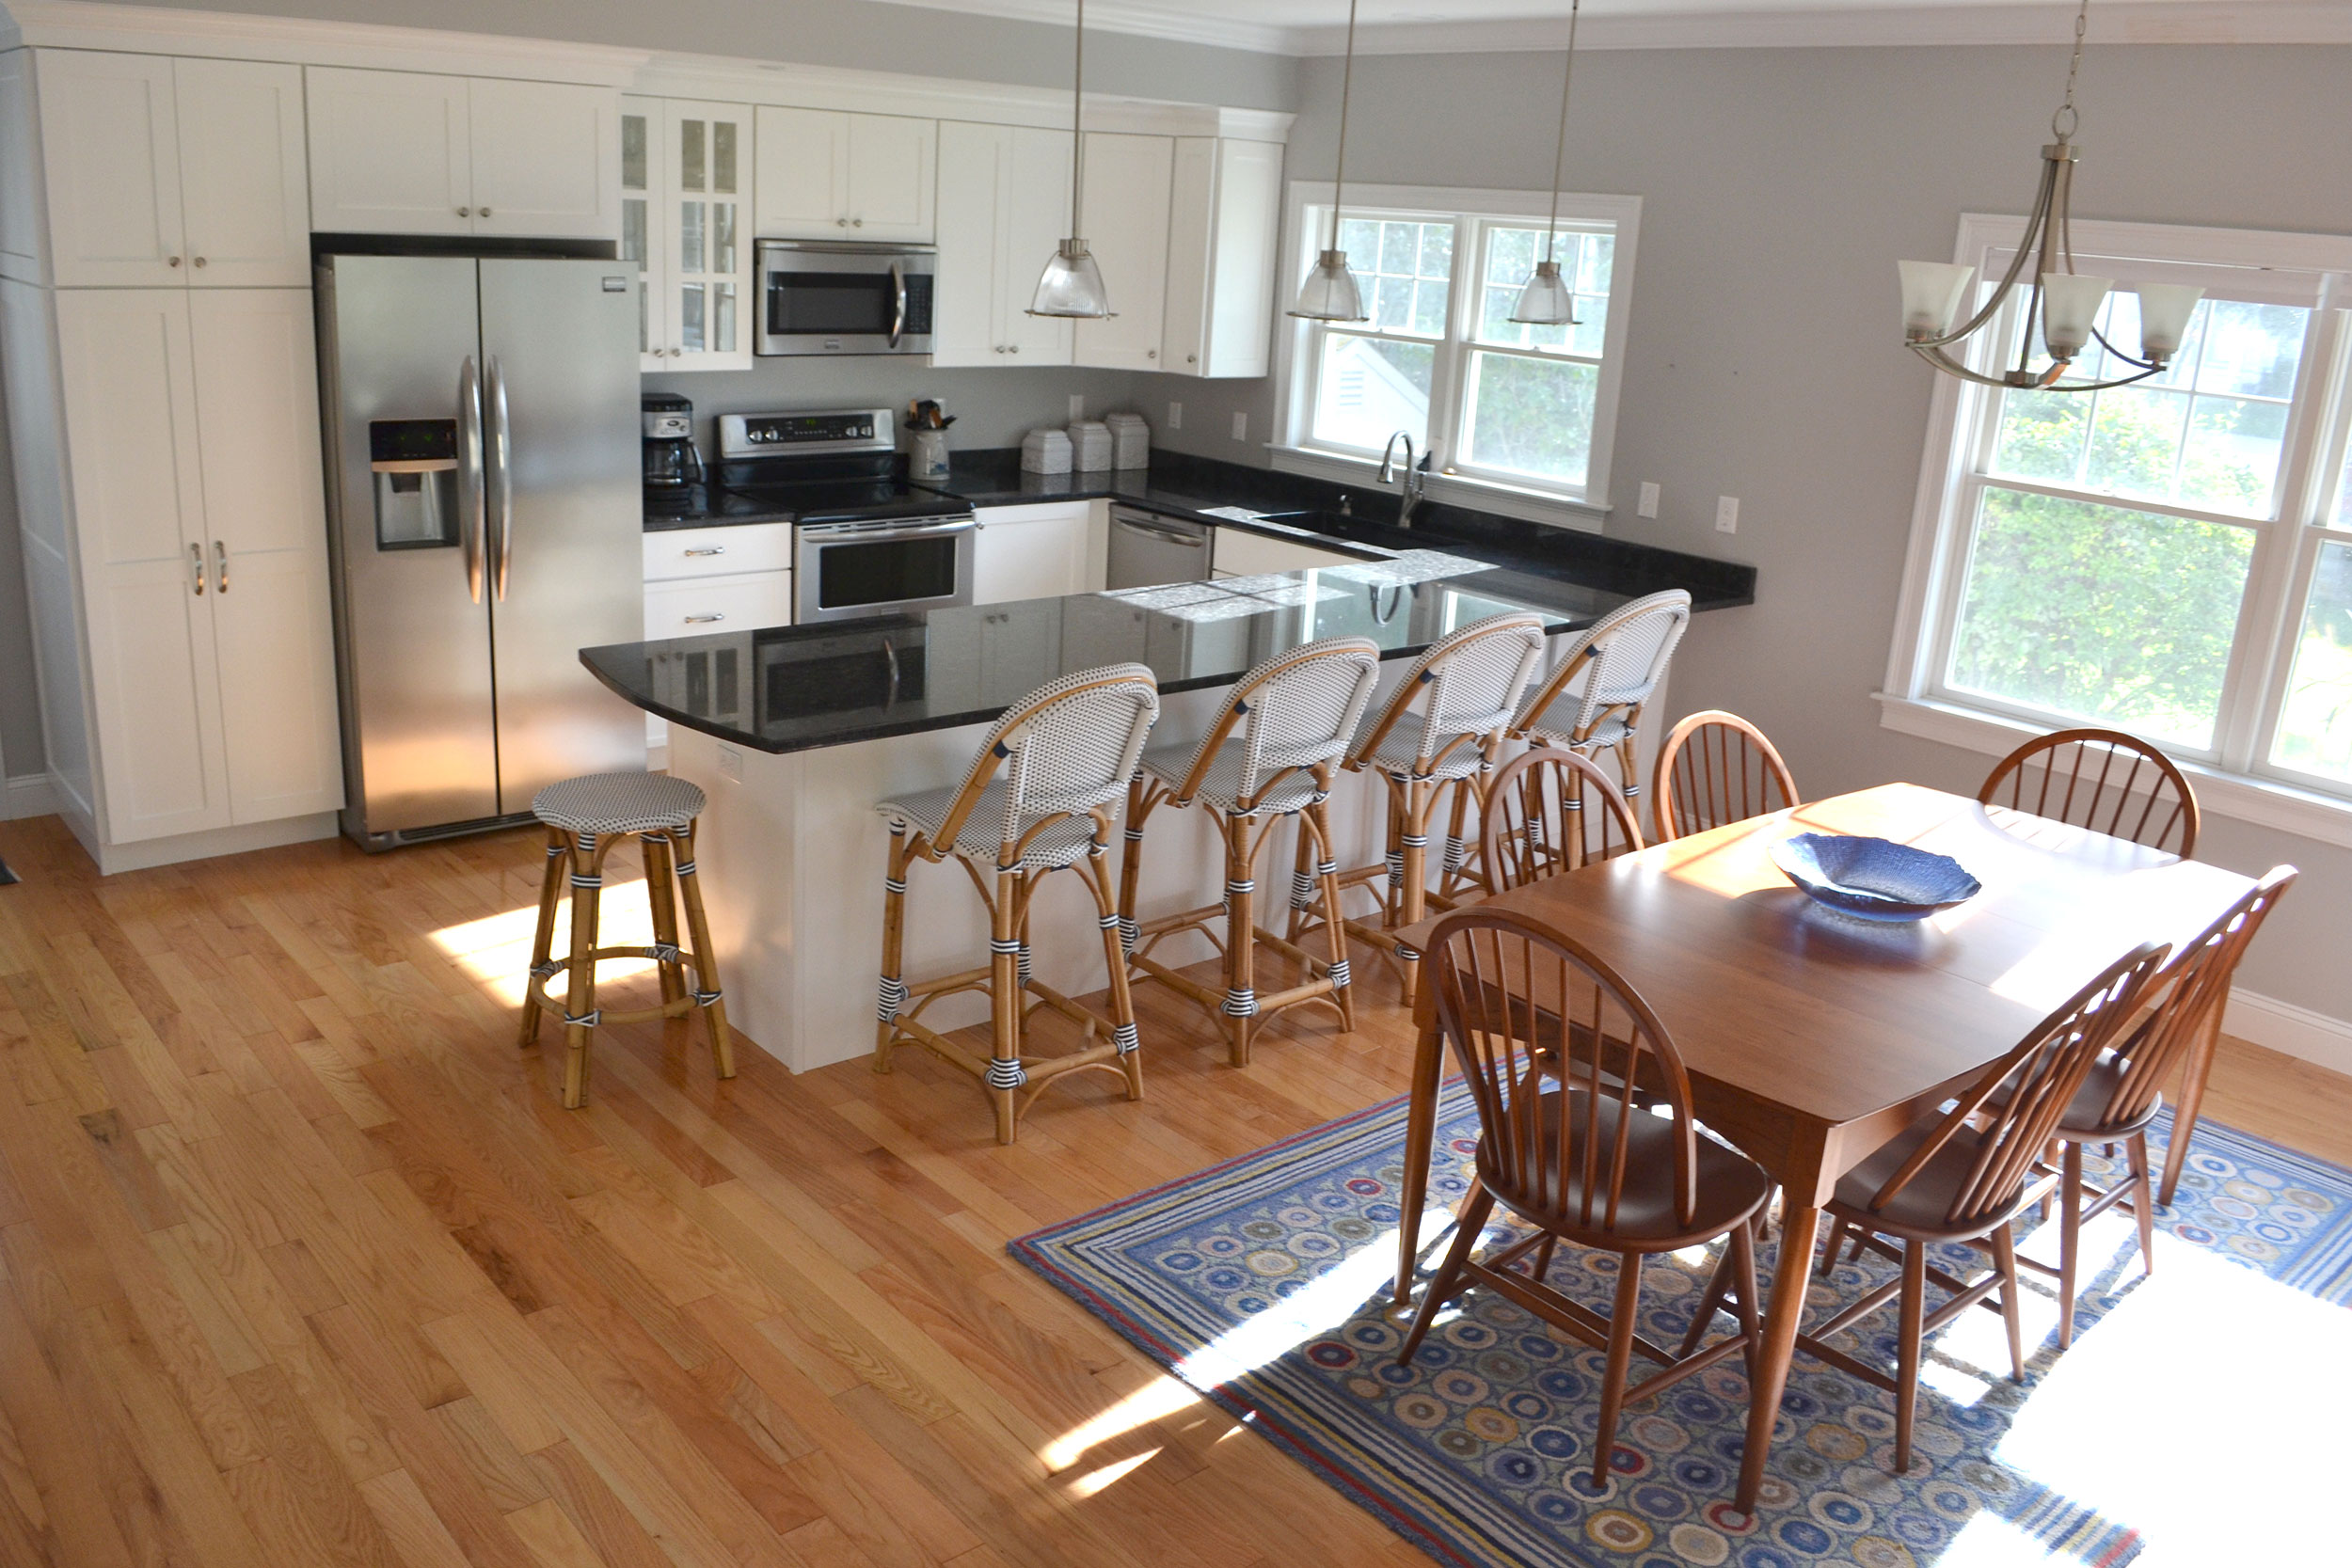 05_wells-kitchen-maine.jpg